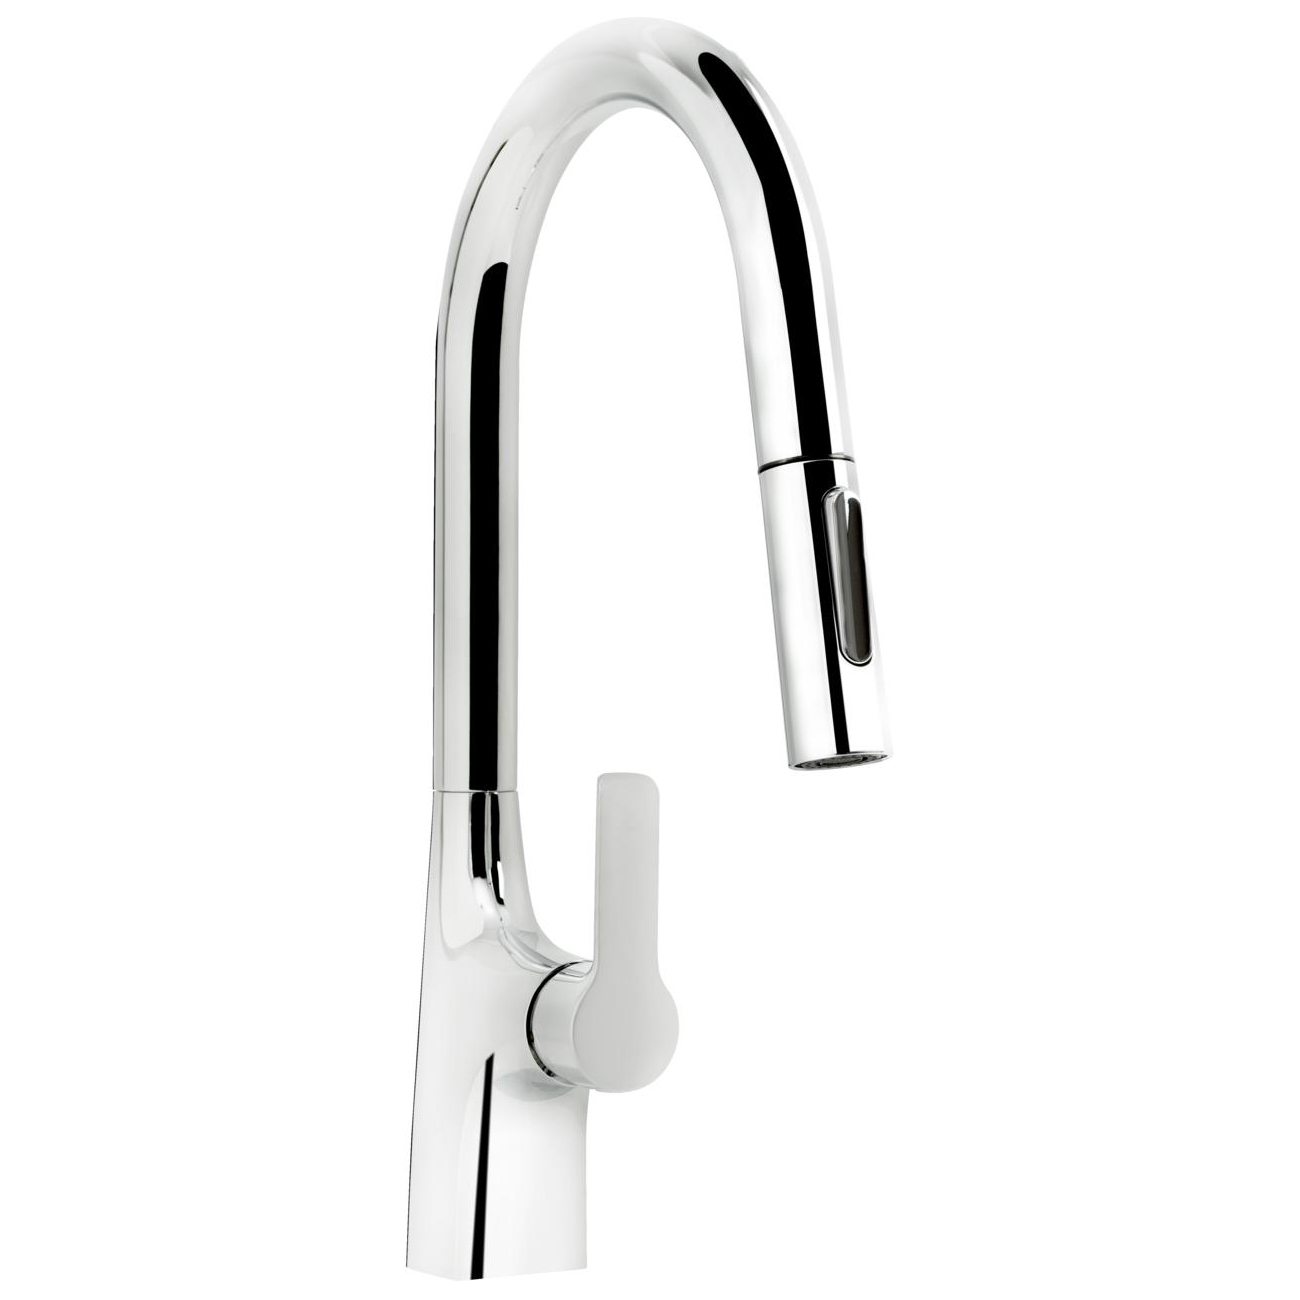 Bristan Gallery Pro Kitchen Sink Mixer Tap - Chrome-0